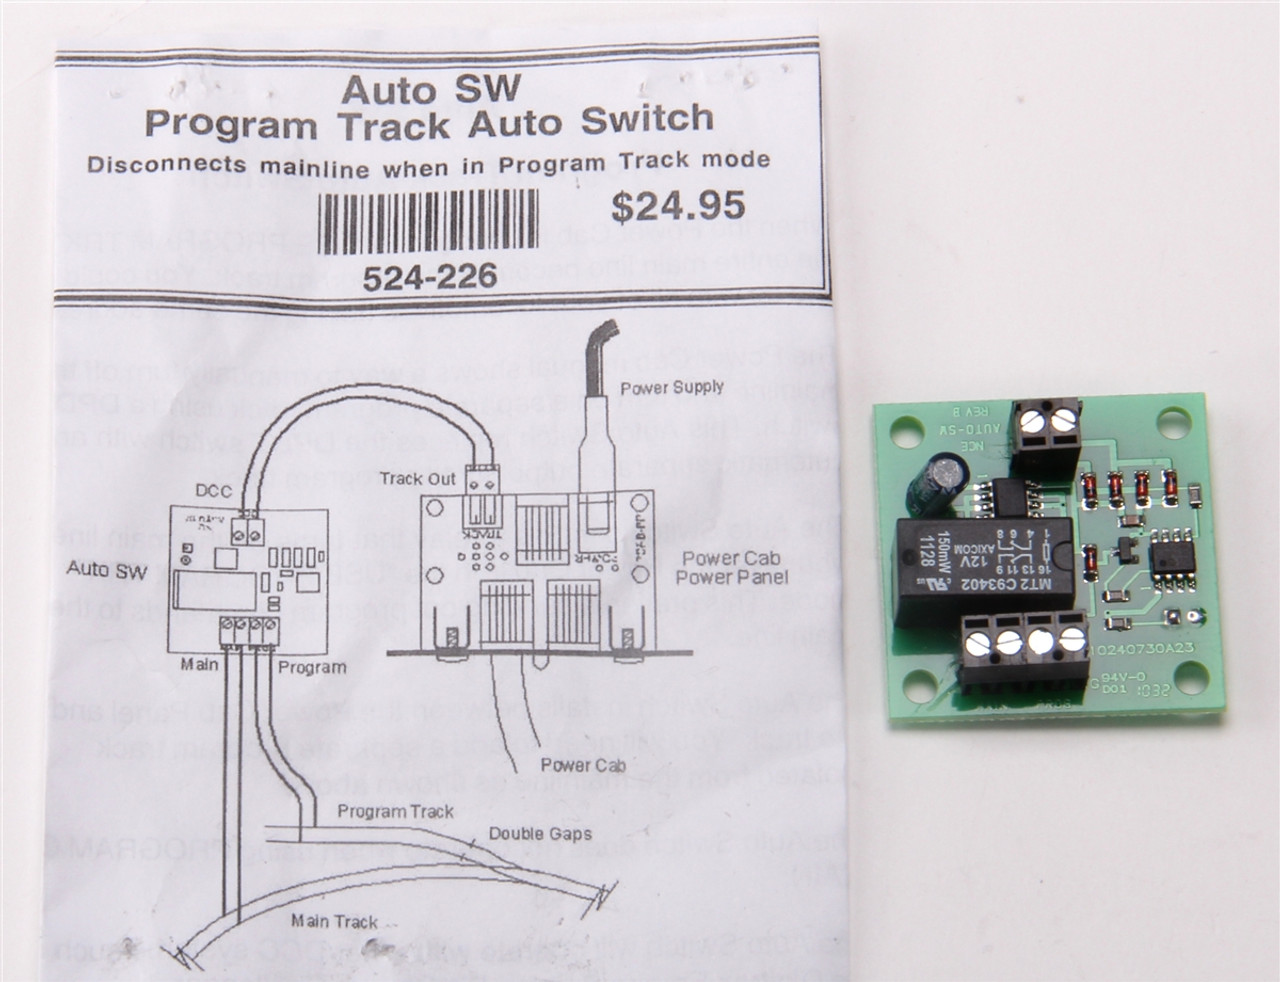 Switch It Nce Wiring Diagram - Electrical Work Wiring Diagram •